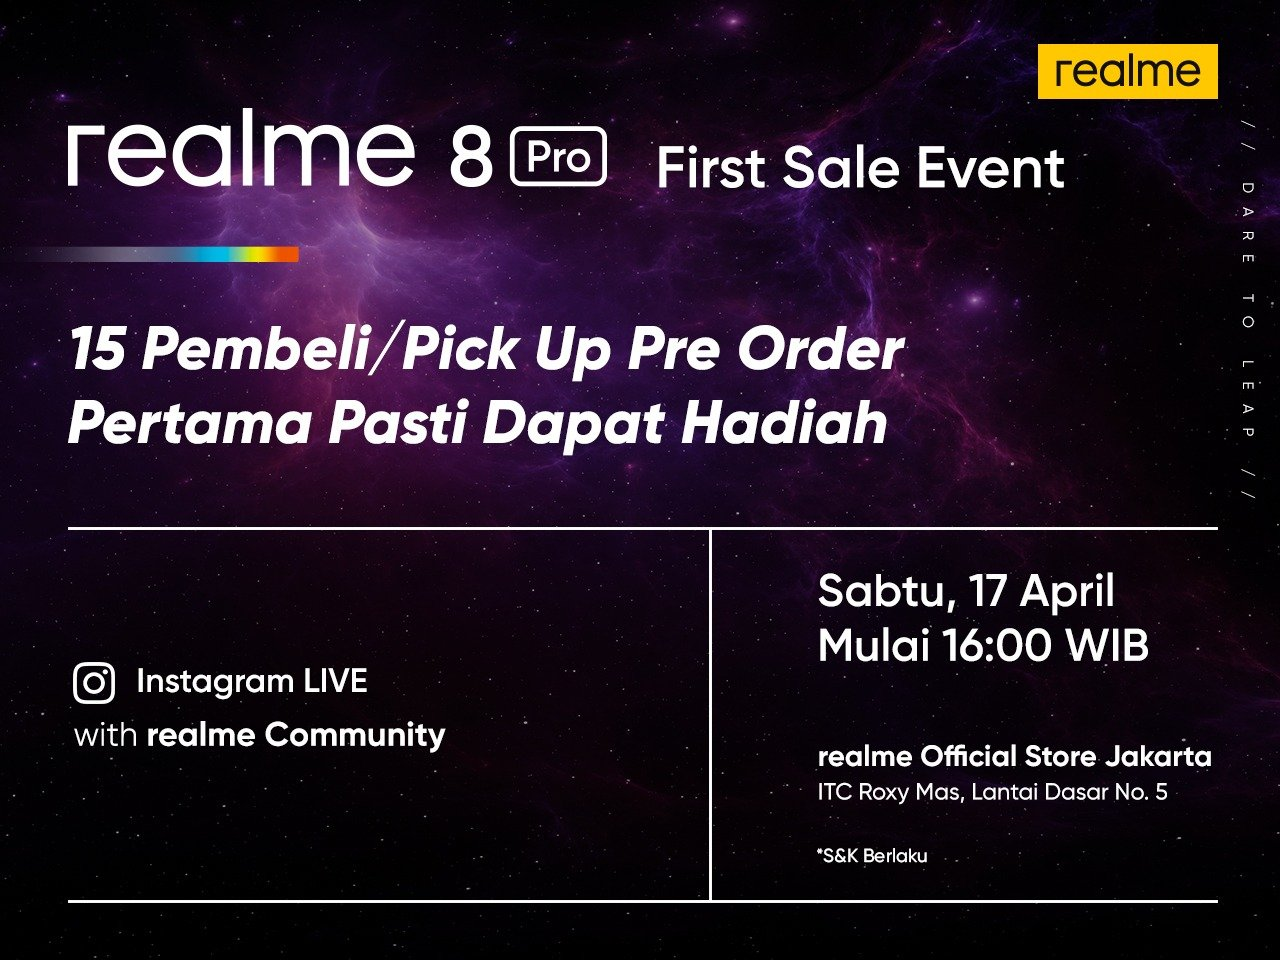 realme Official Store